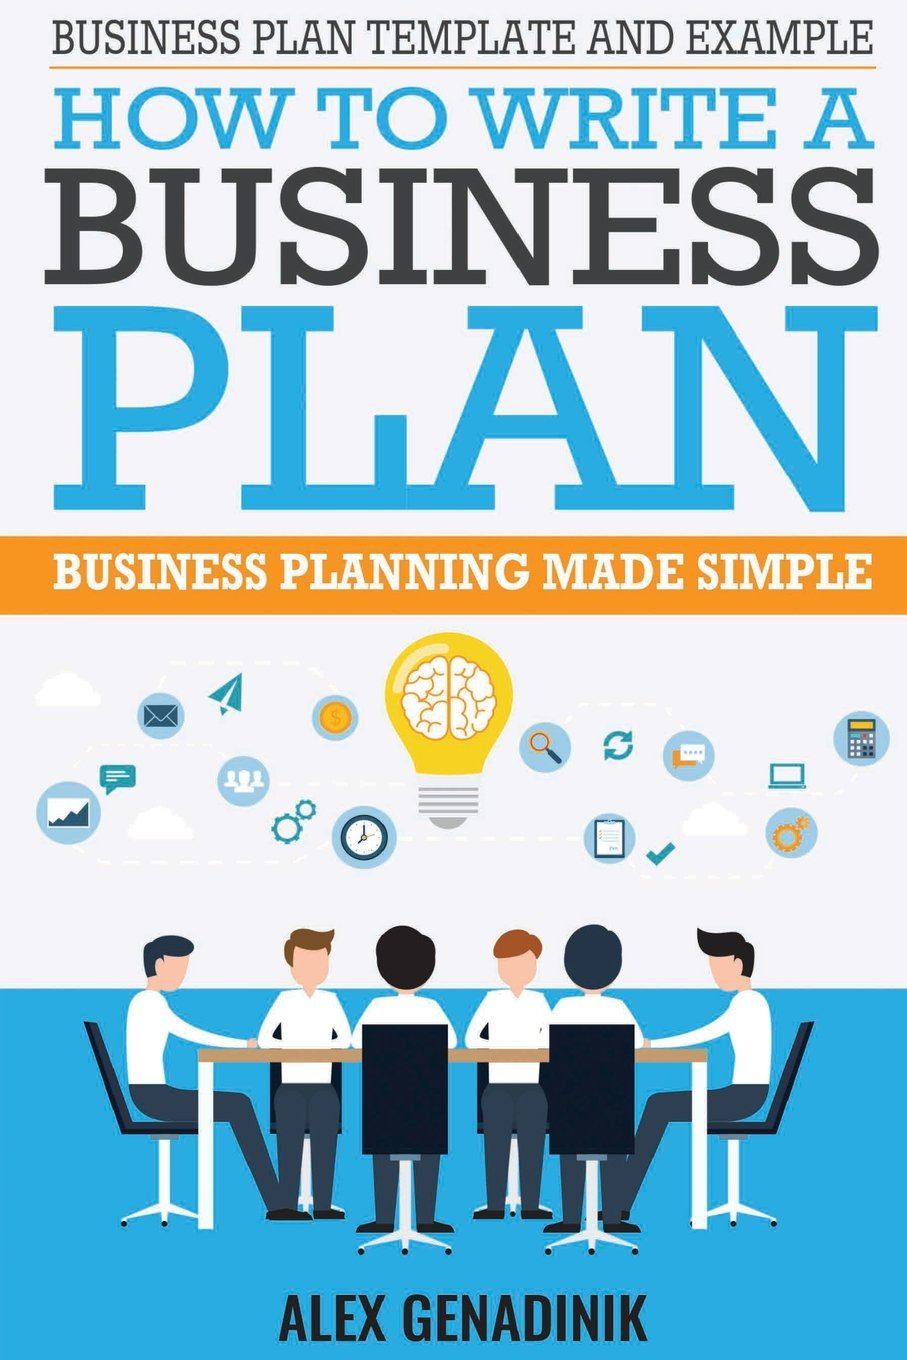 Business plan template and example how to write a business plan business plan template and example how to write a business plan business planning made simple alex genadinik 9781519741783 amazon books accmission Image collections